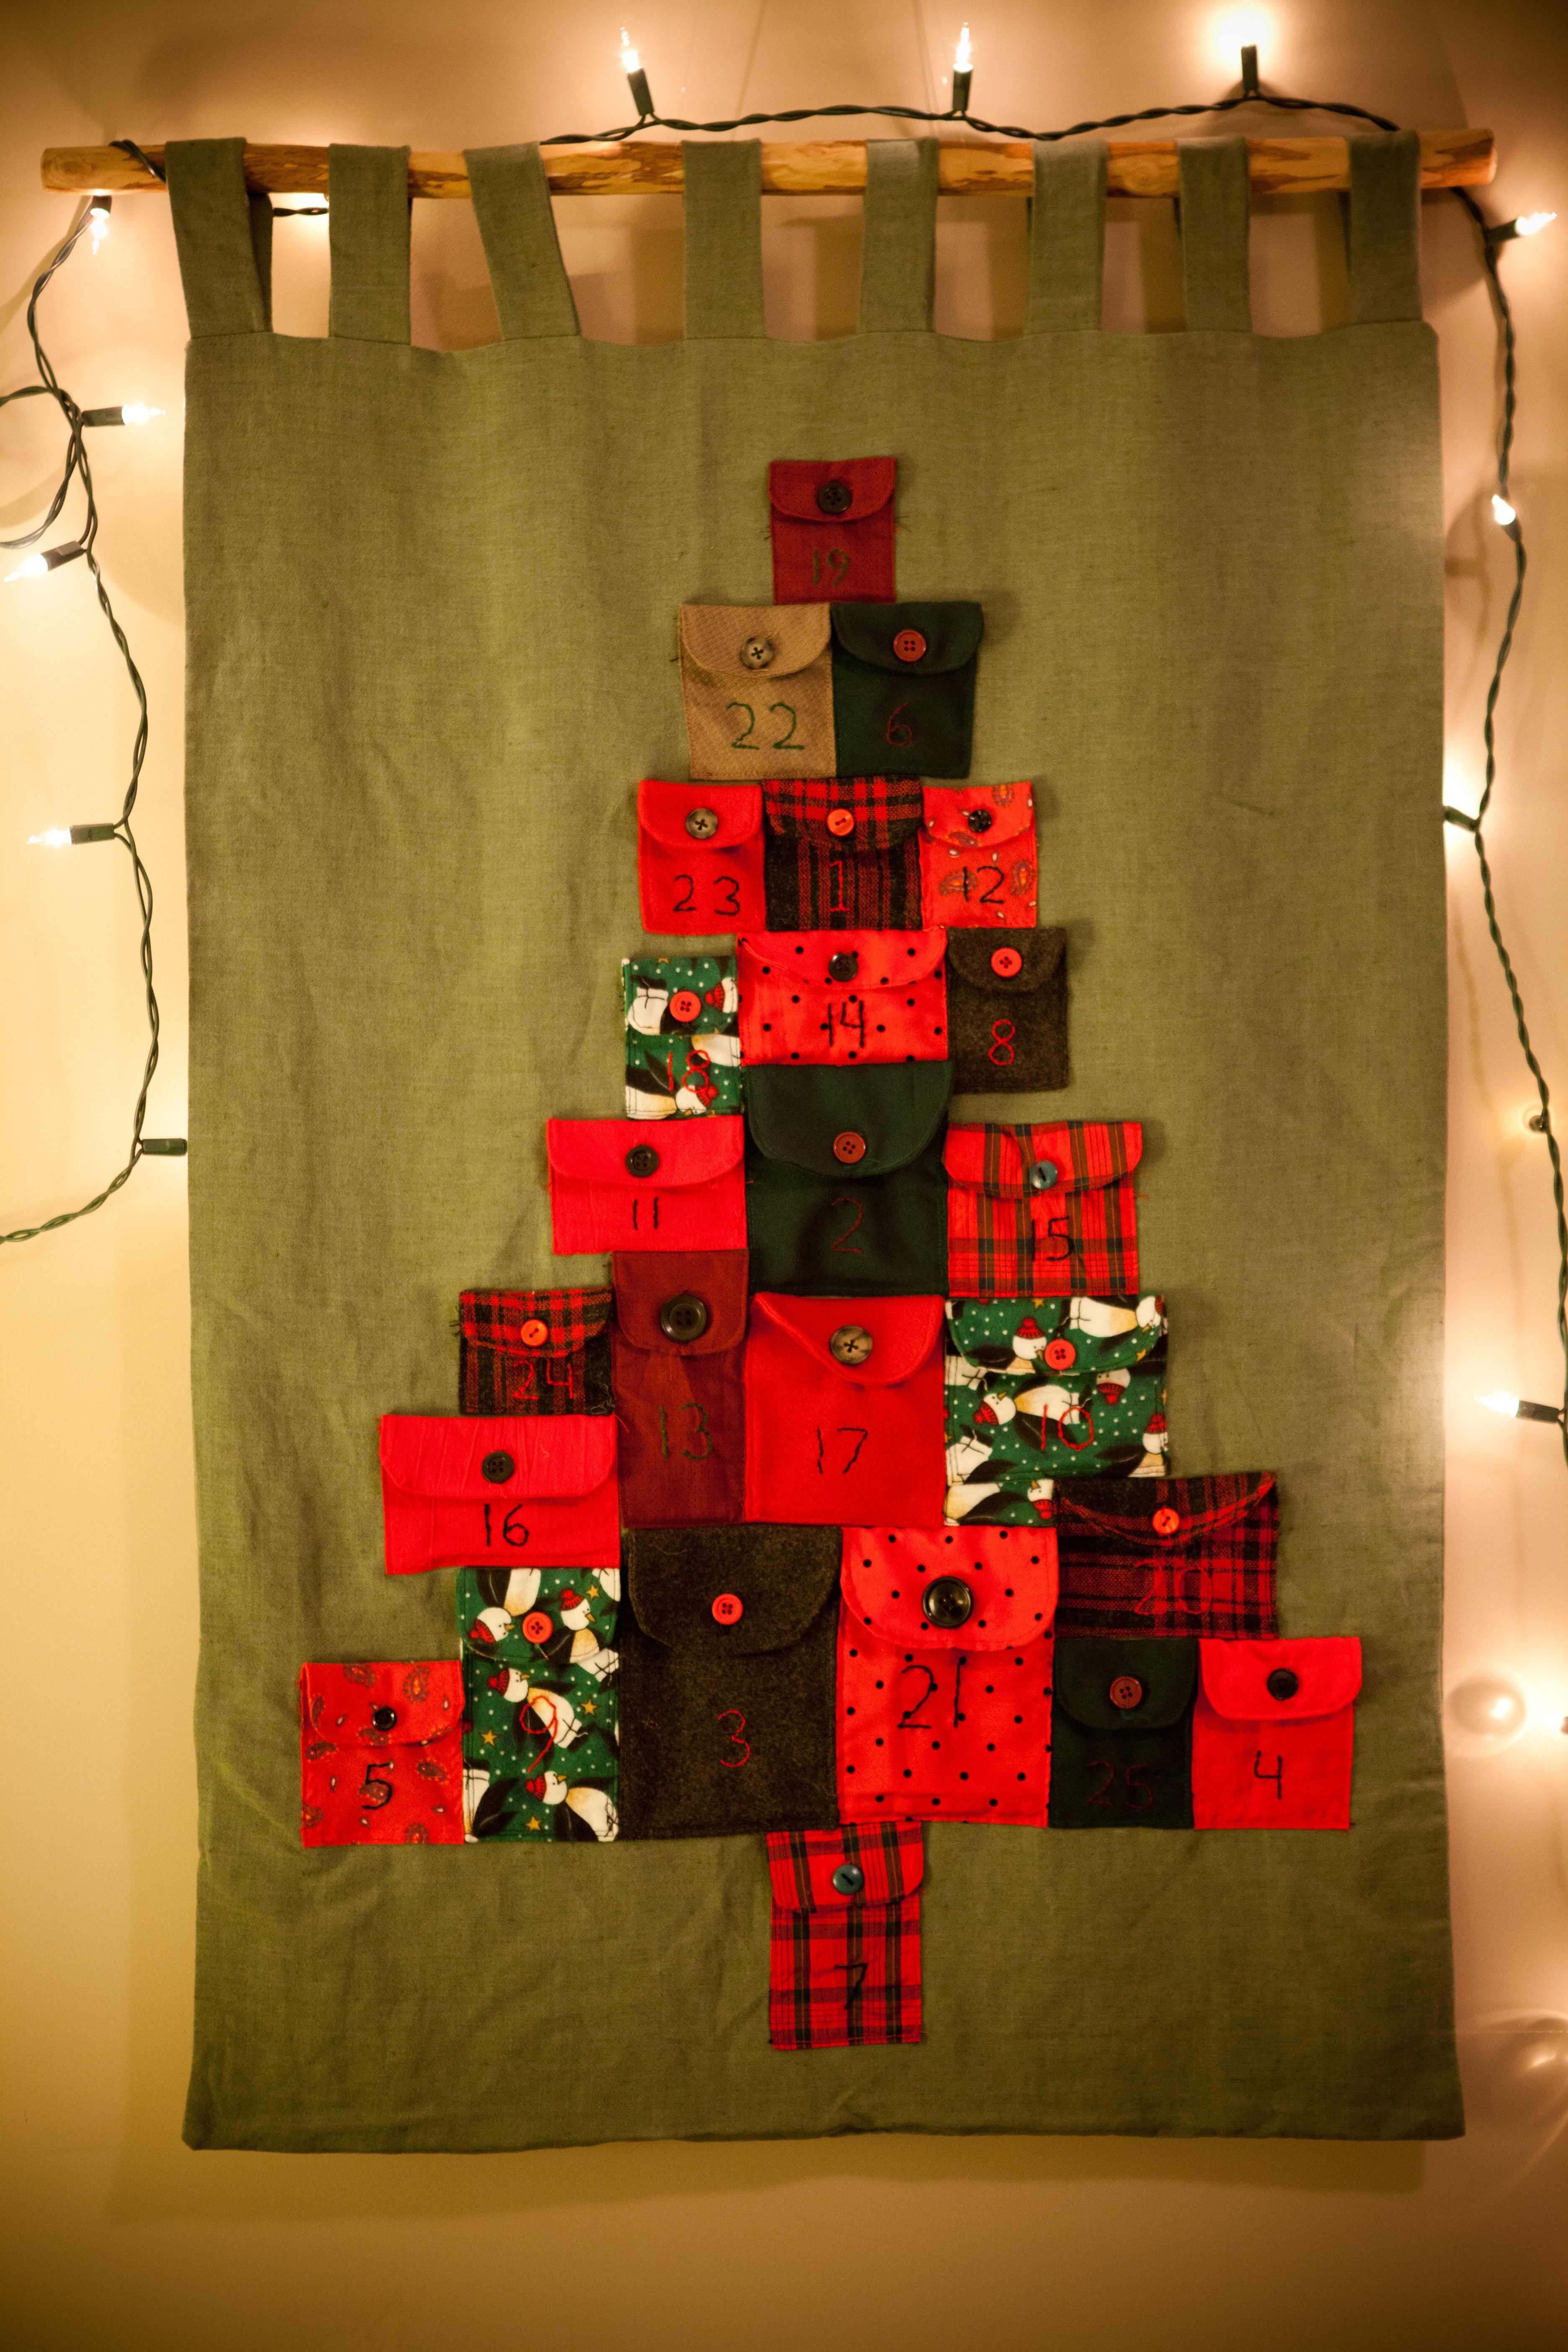 Advent Calendar House Diy : Advent calendar diy the secret life of daydreams